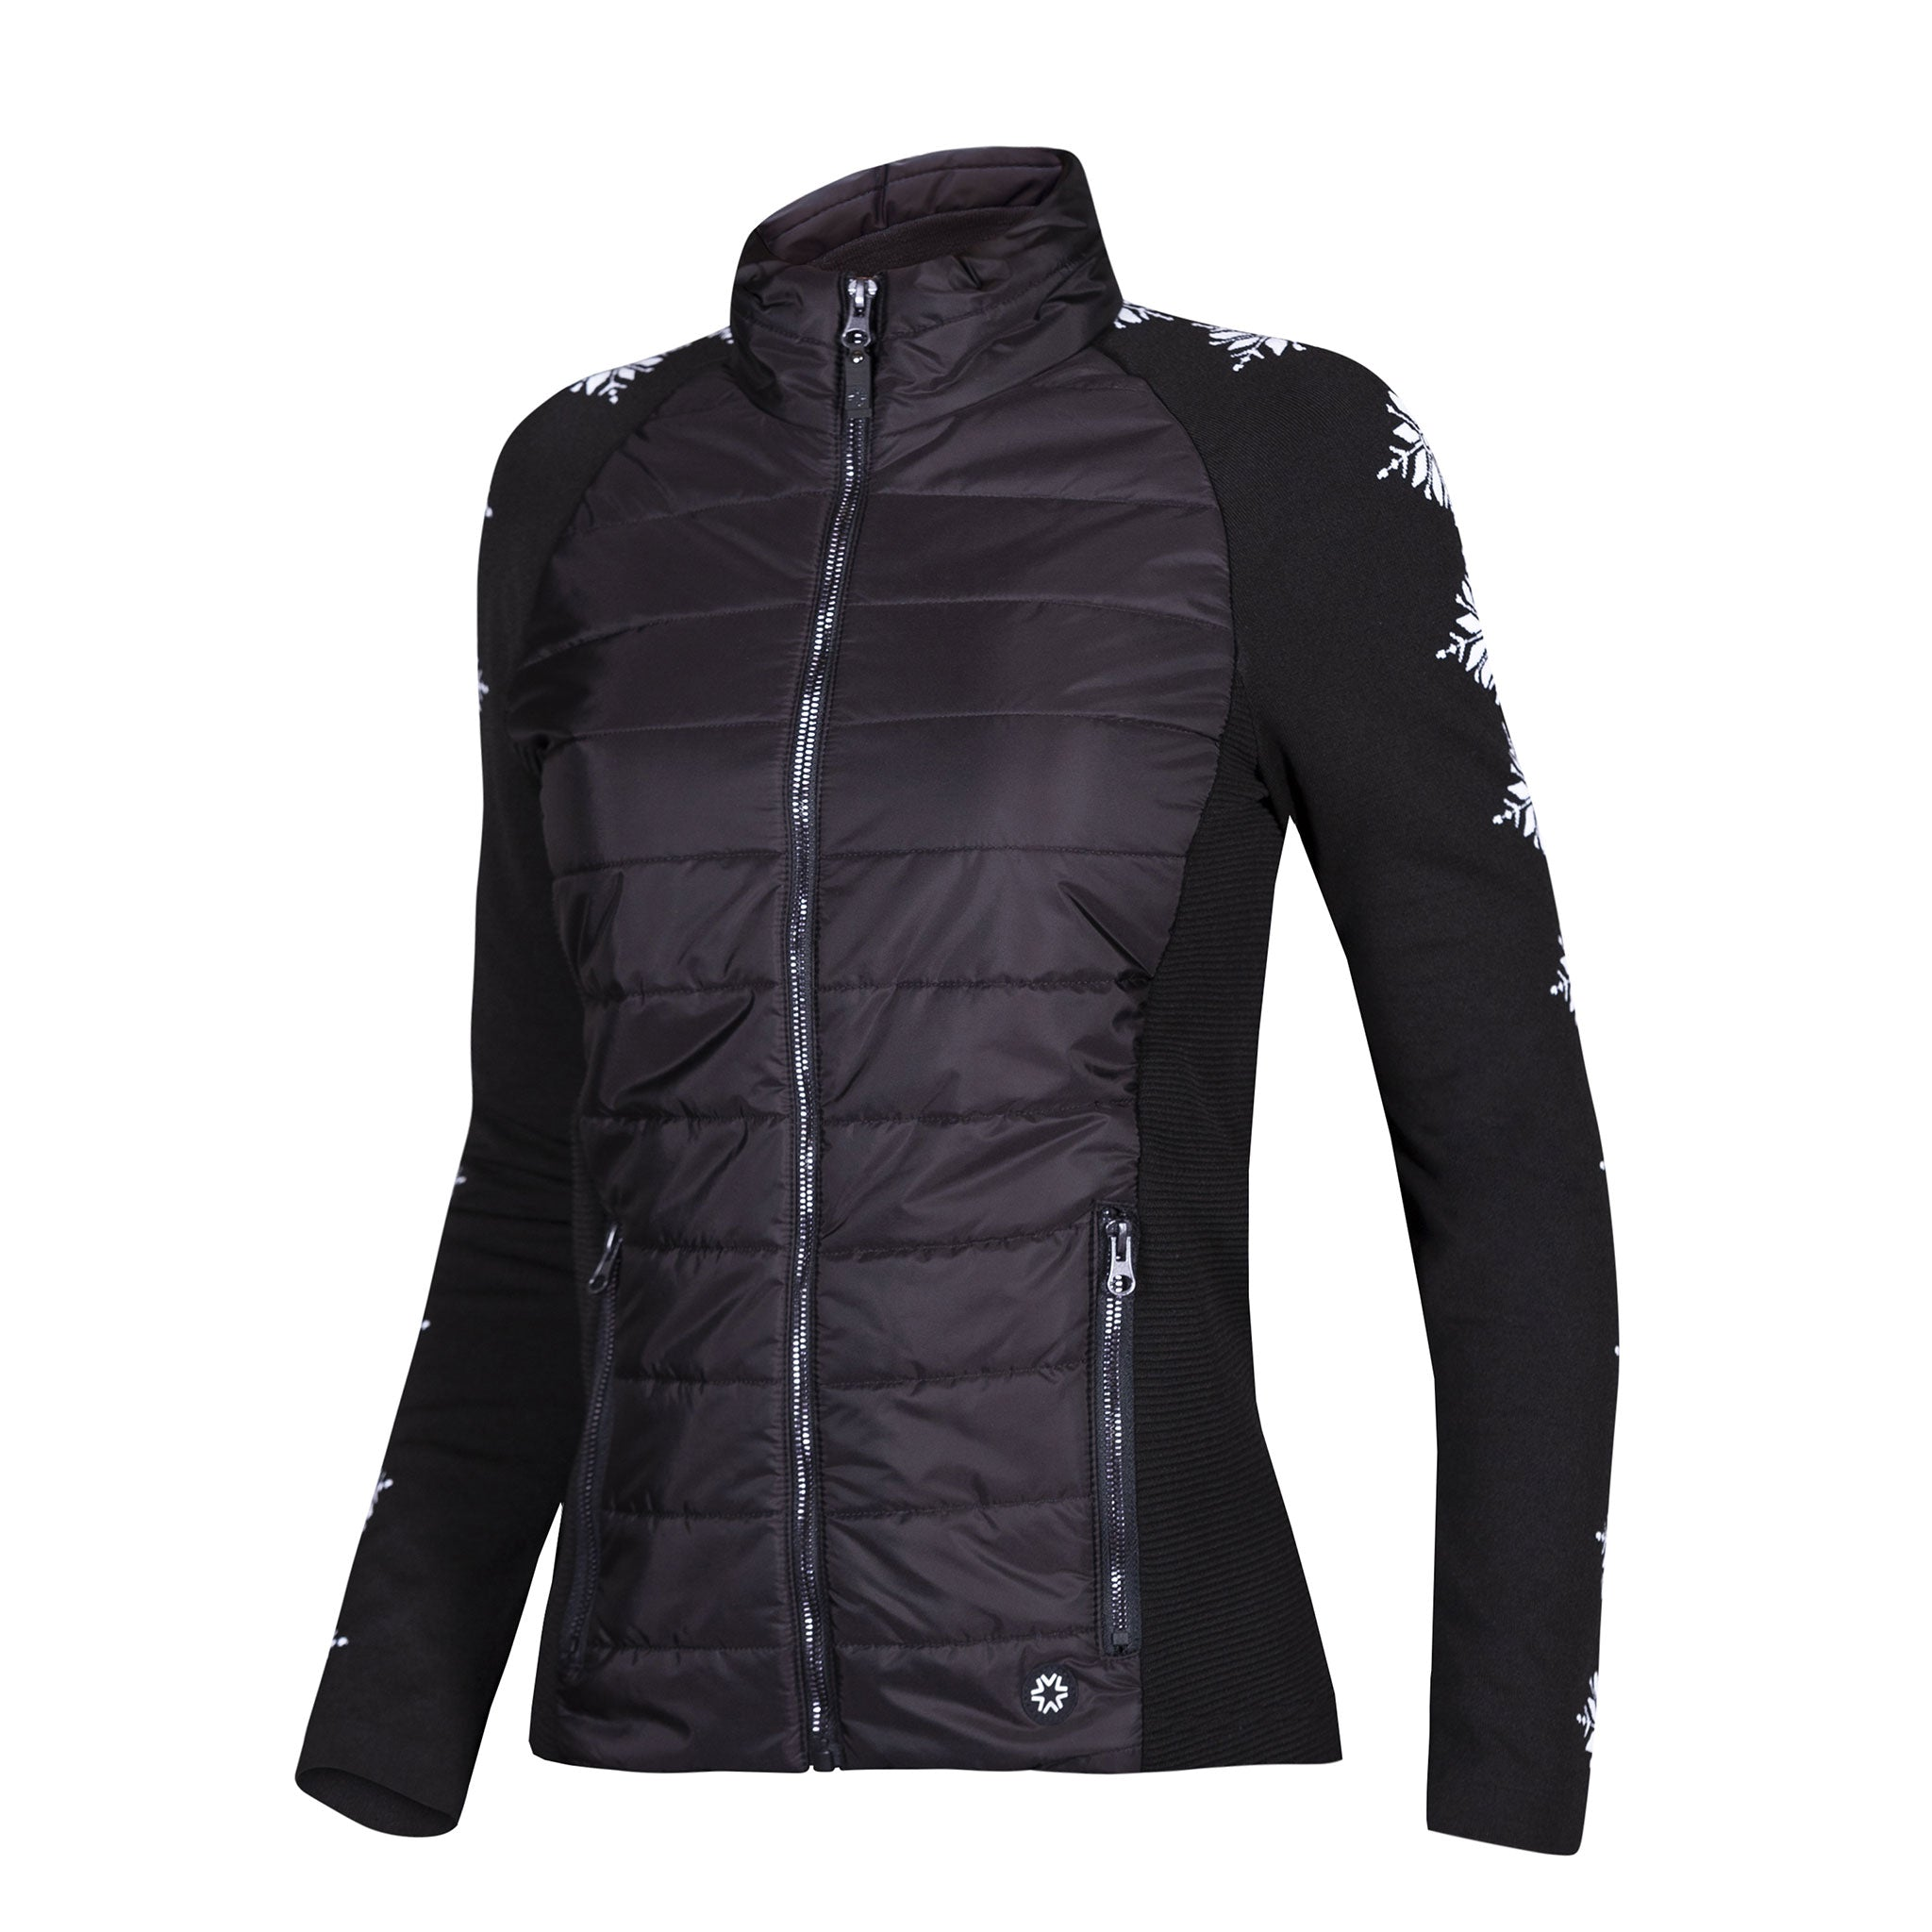 Avoriaz Full Zip Sweater